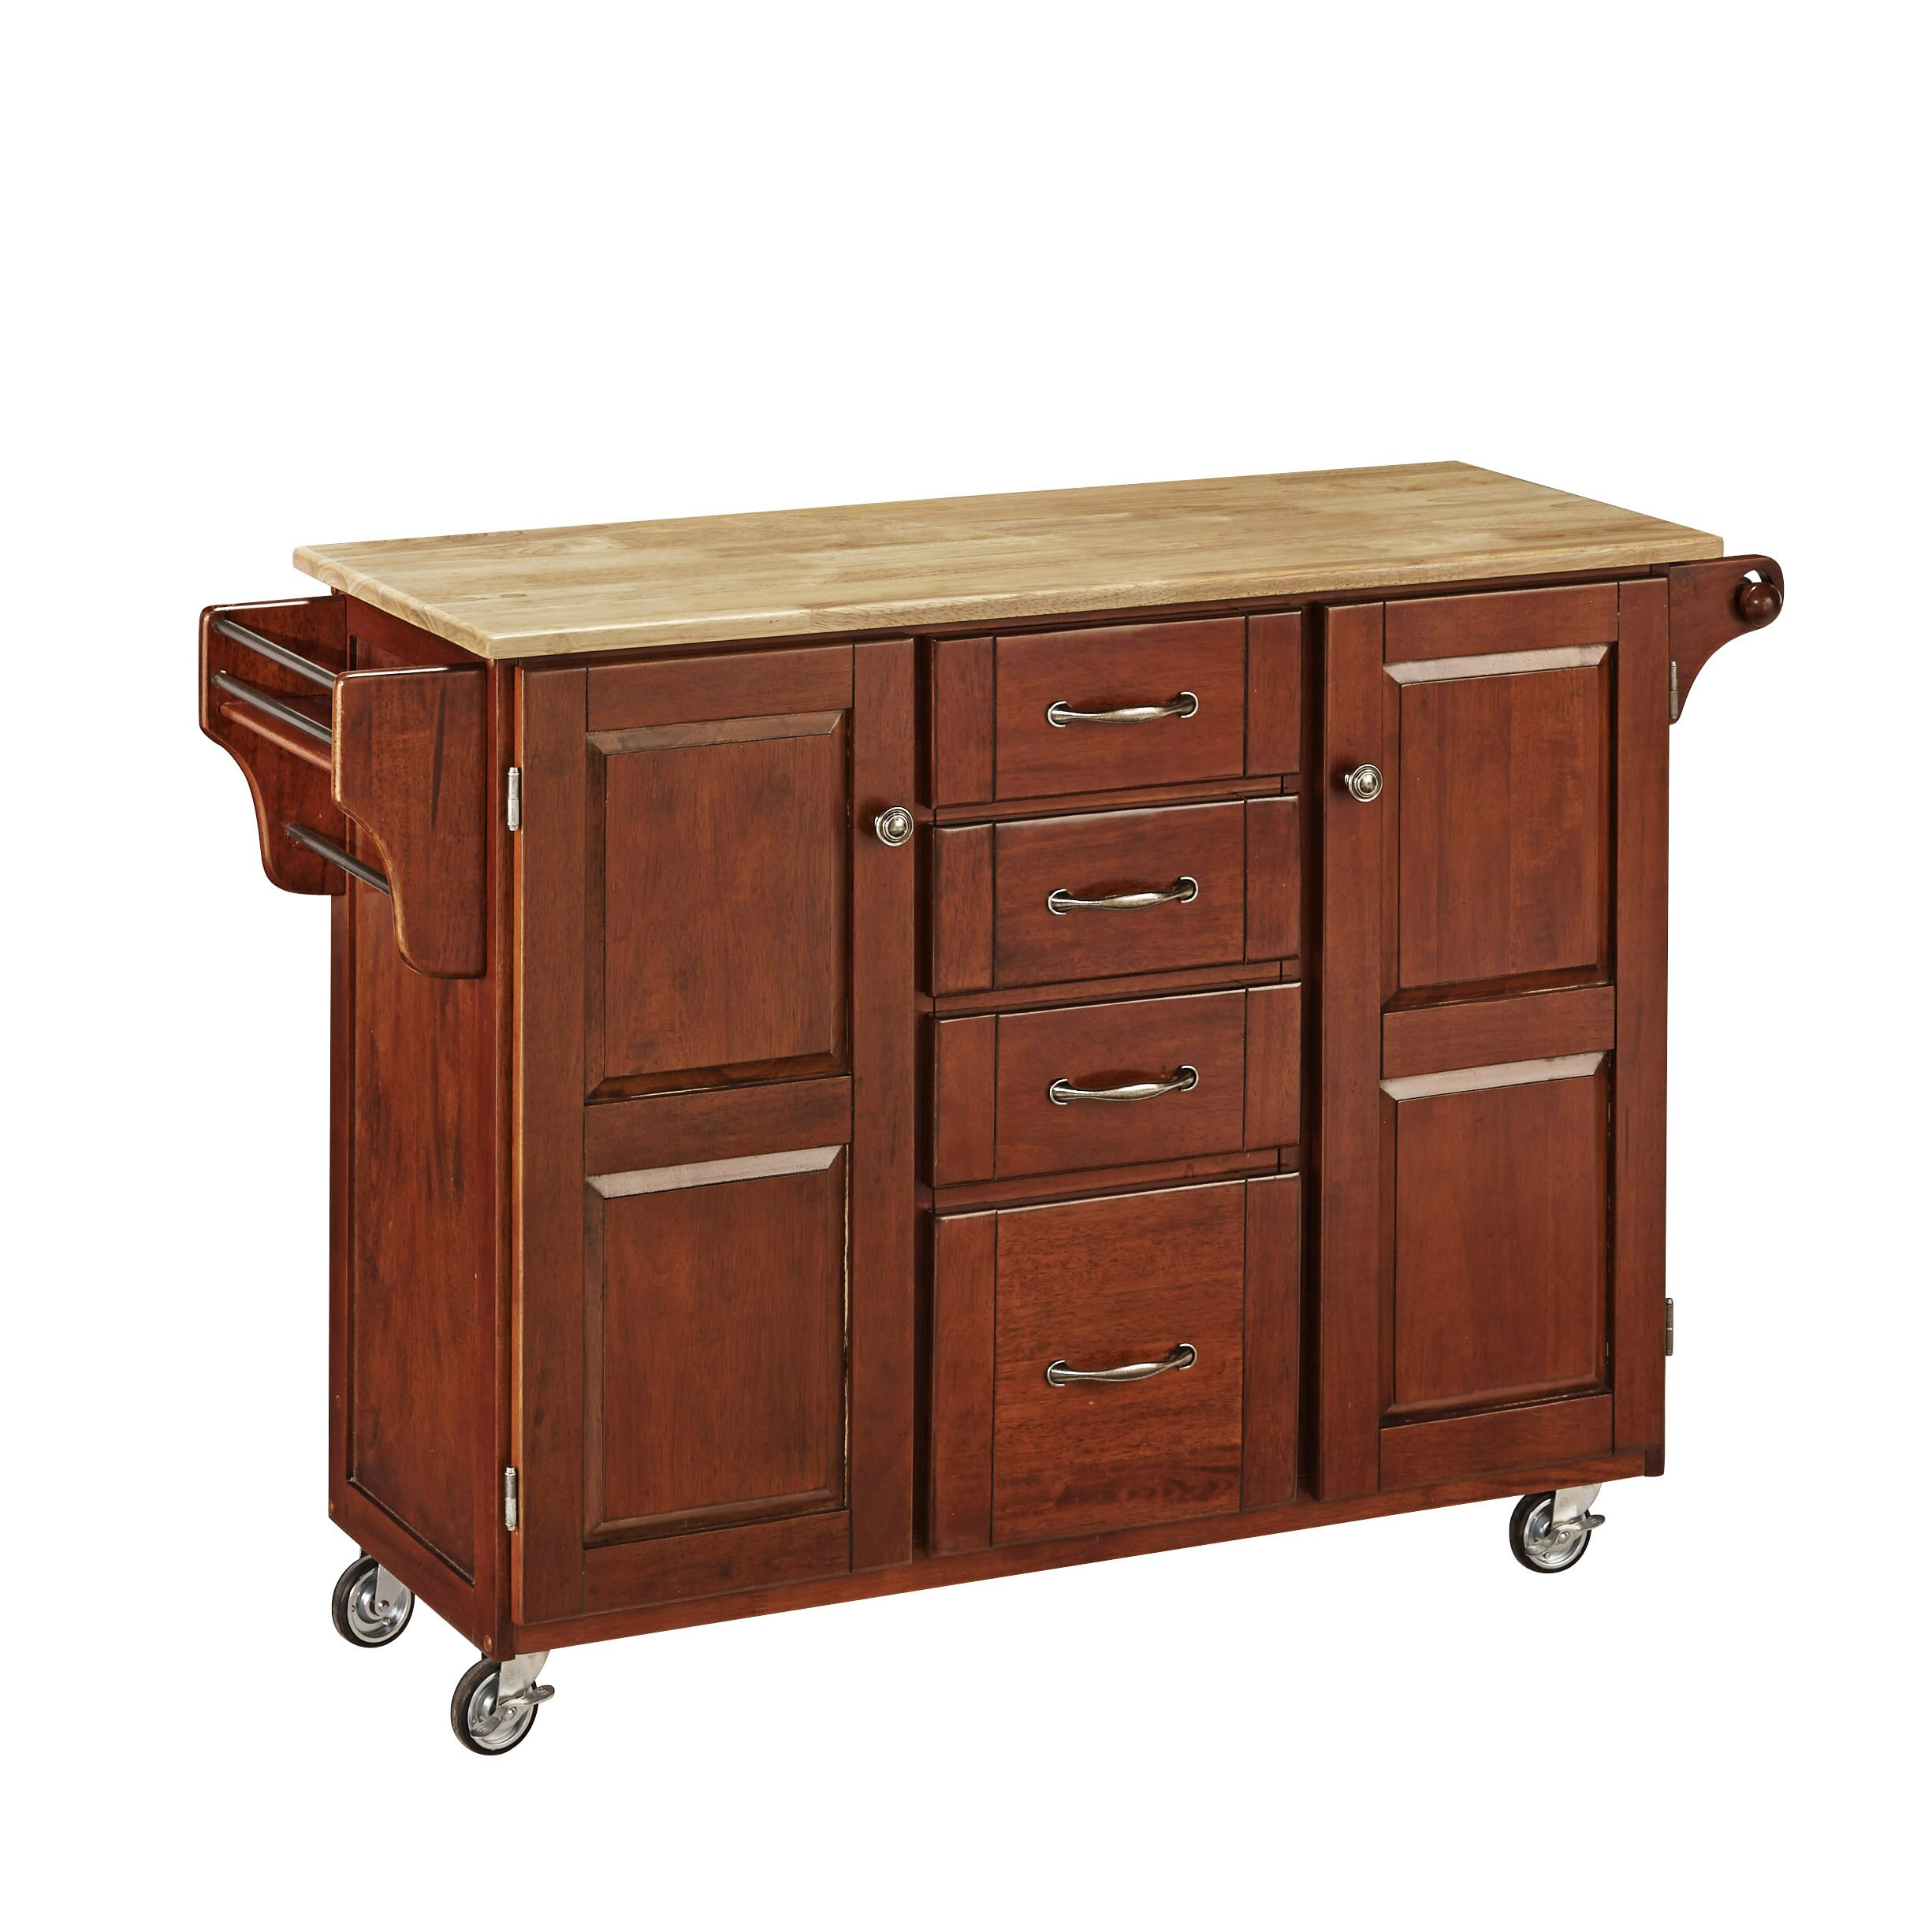 Adelle A Cart Kitchen Island With Butcher Block Top